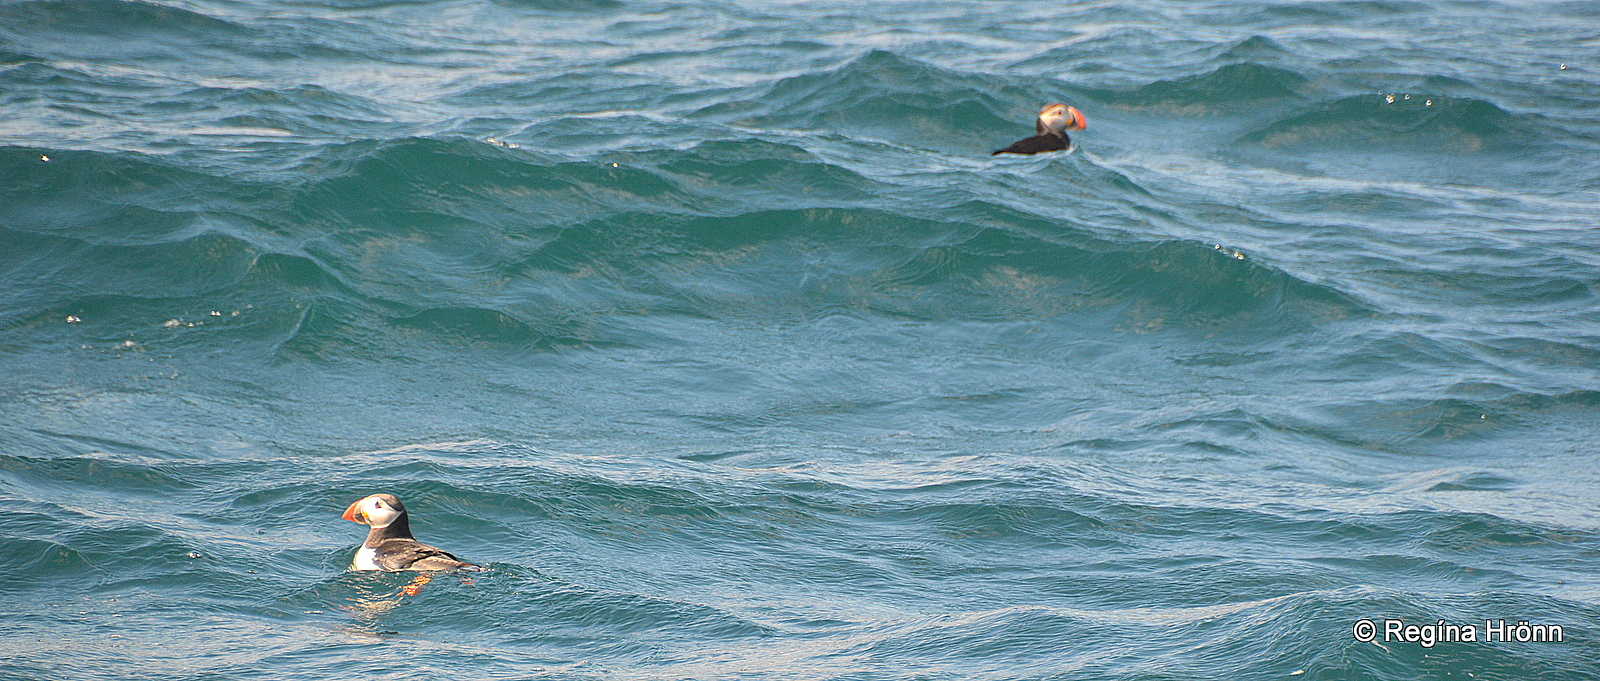 Two puffins swimming in the ocean by Iceland